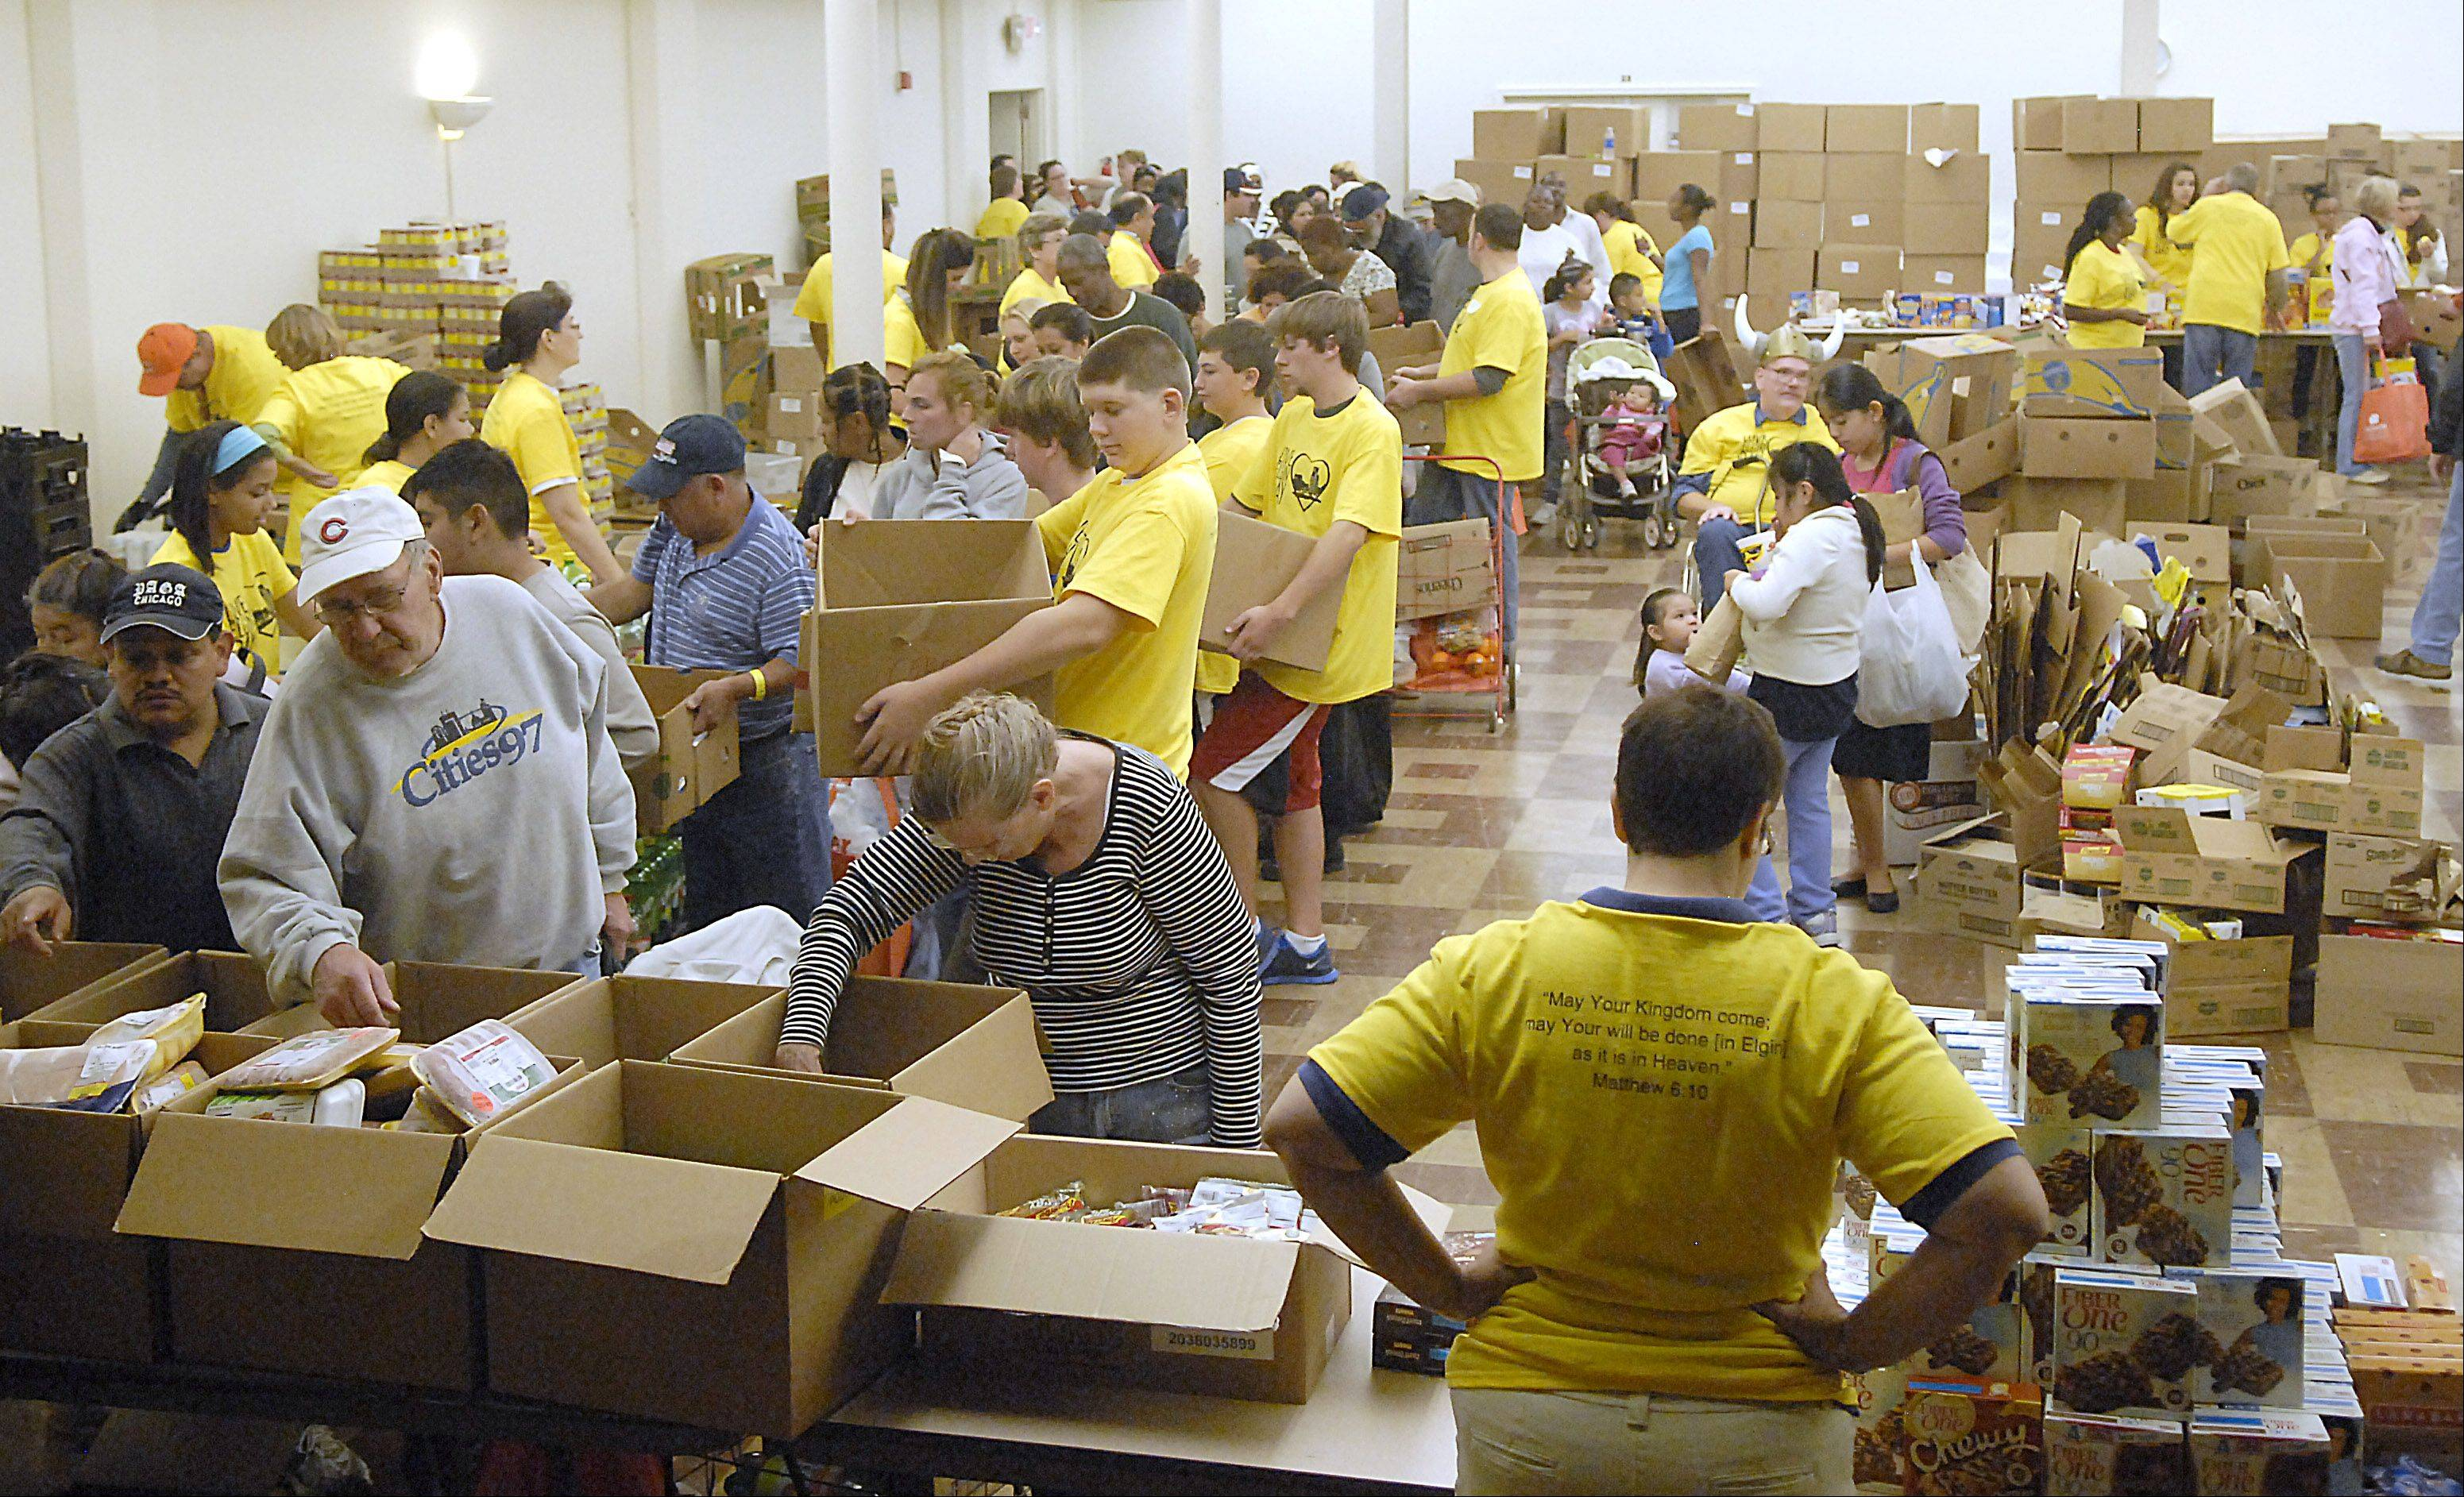 Volunteers in yellow shirts help people gather free groceries in the basement of the First United Methodist Church on Love Elgin Day on Saturday, September 29.